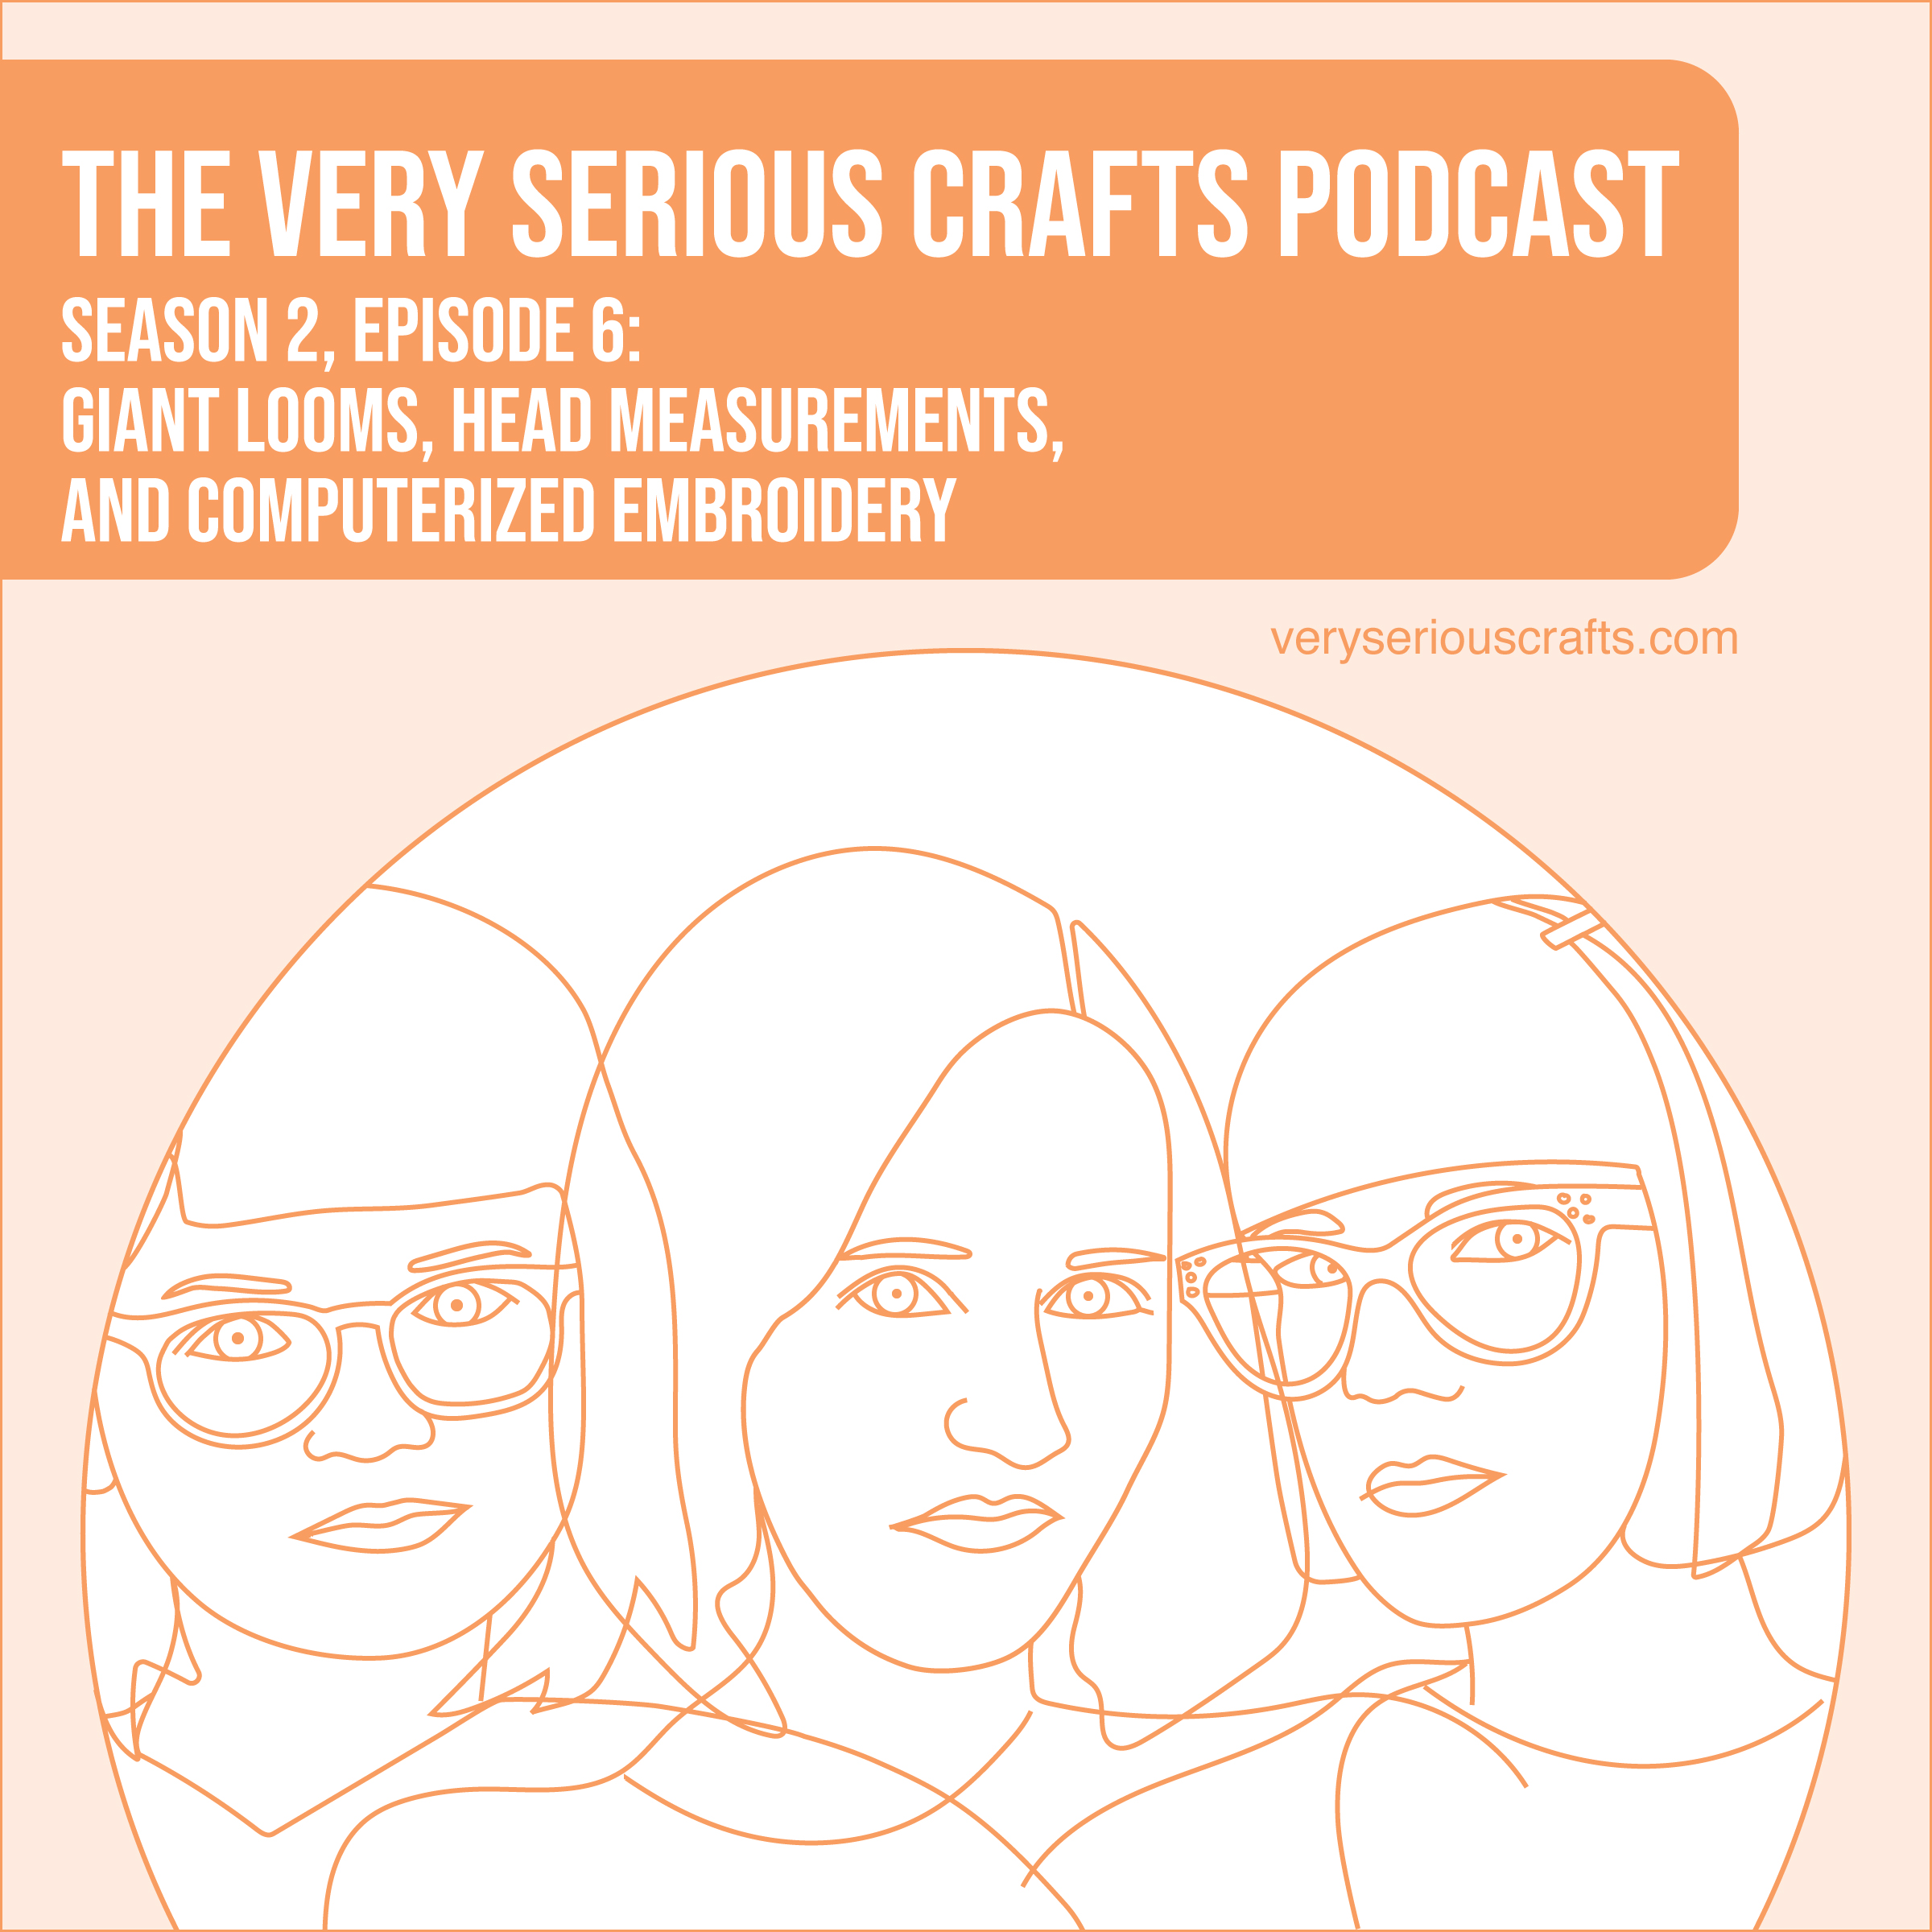 S2E06: Giant Looms, Head Measurements, and Computerized Embroidery